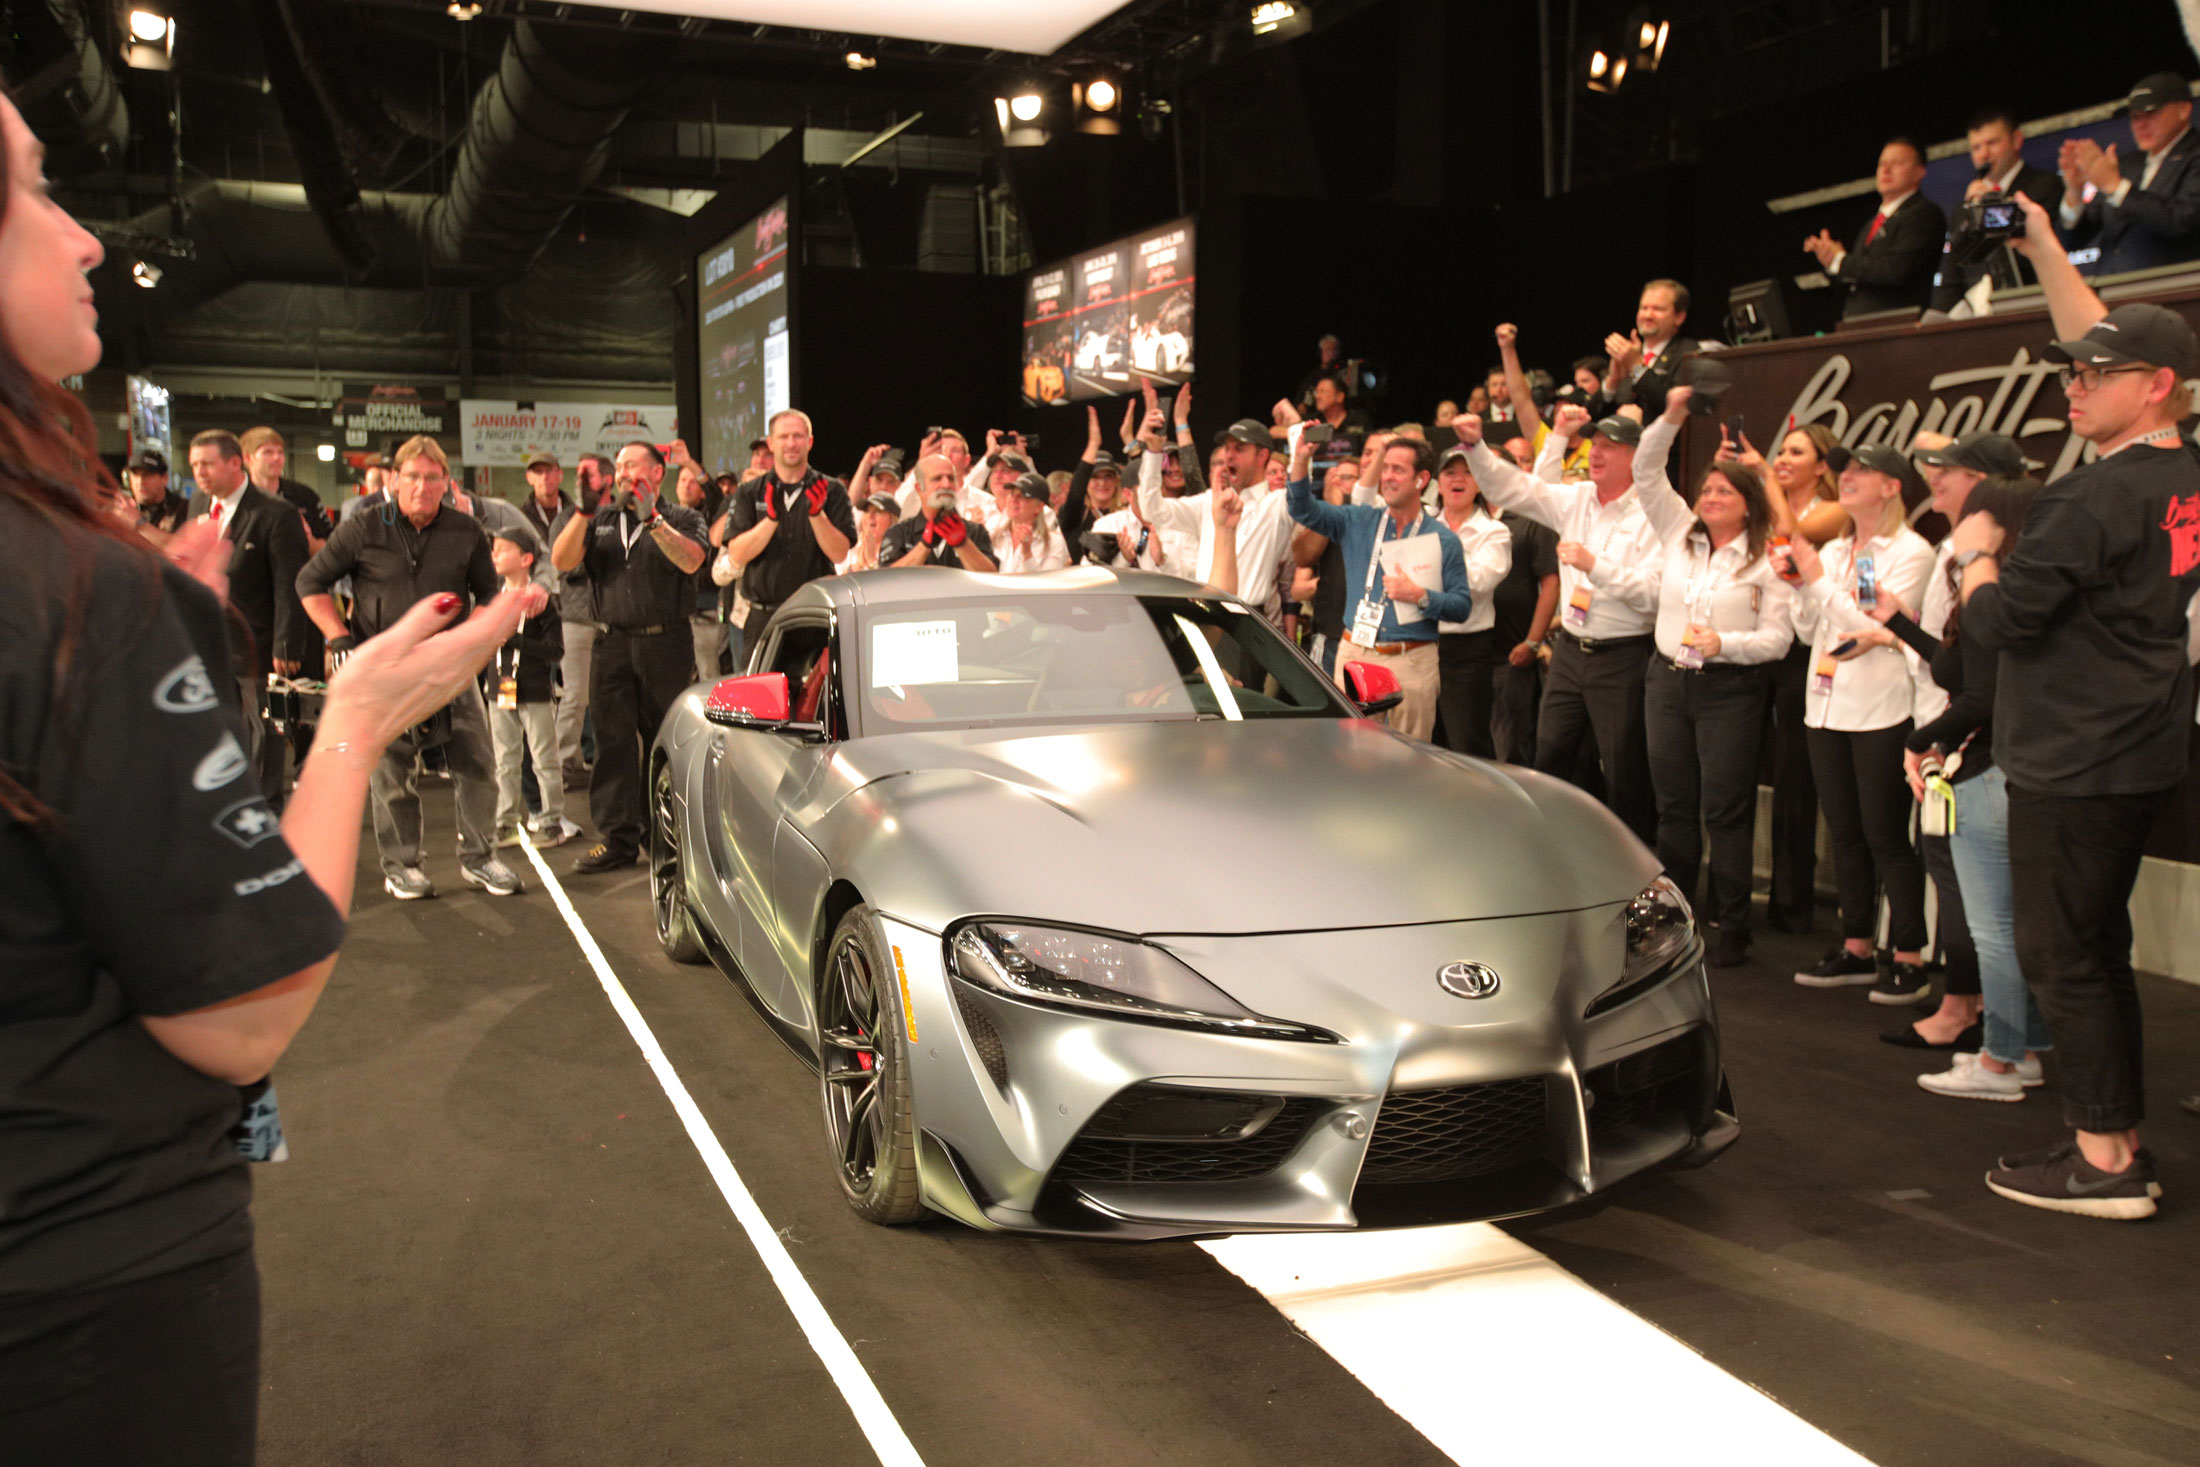 2020 Toyota Supra sold at Barrett-Jackson